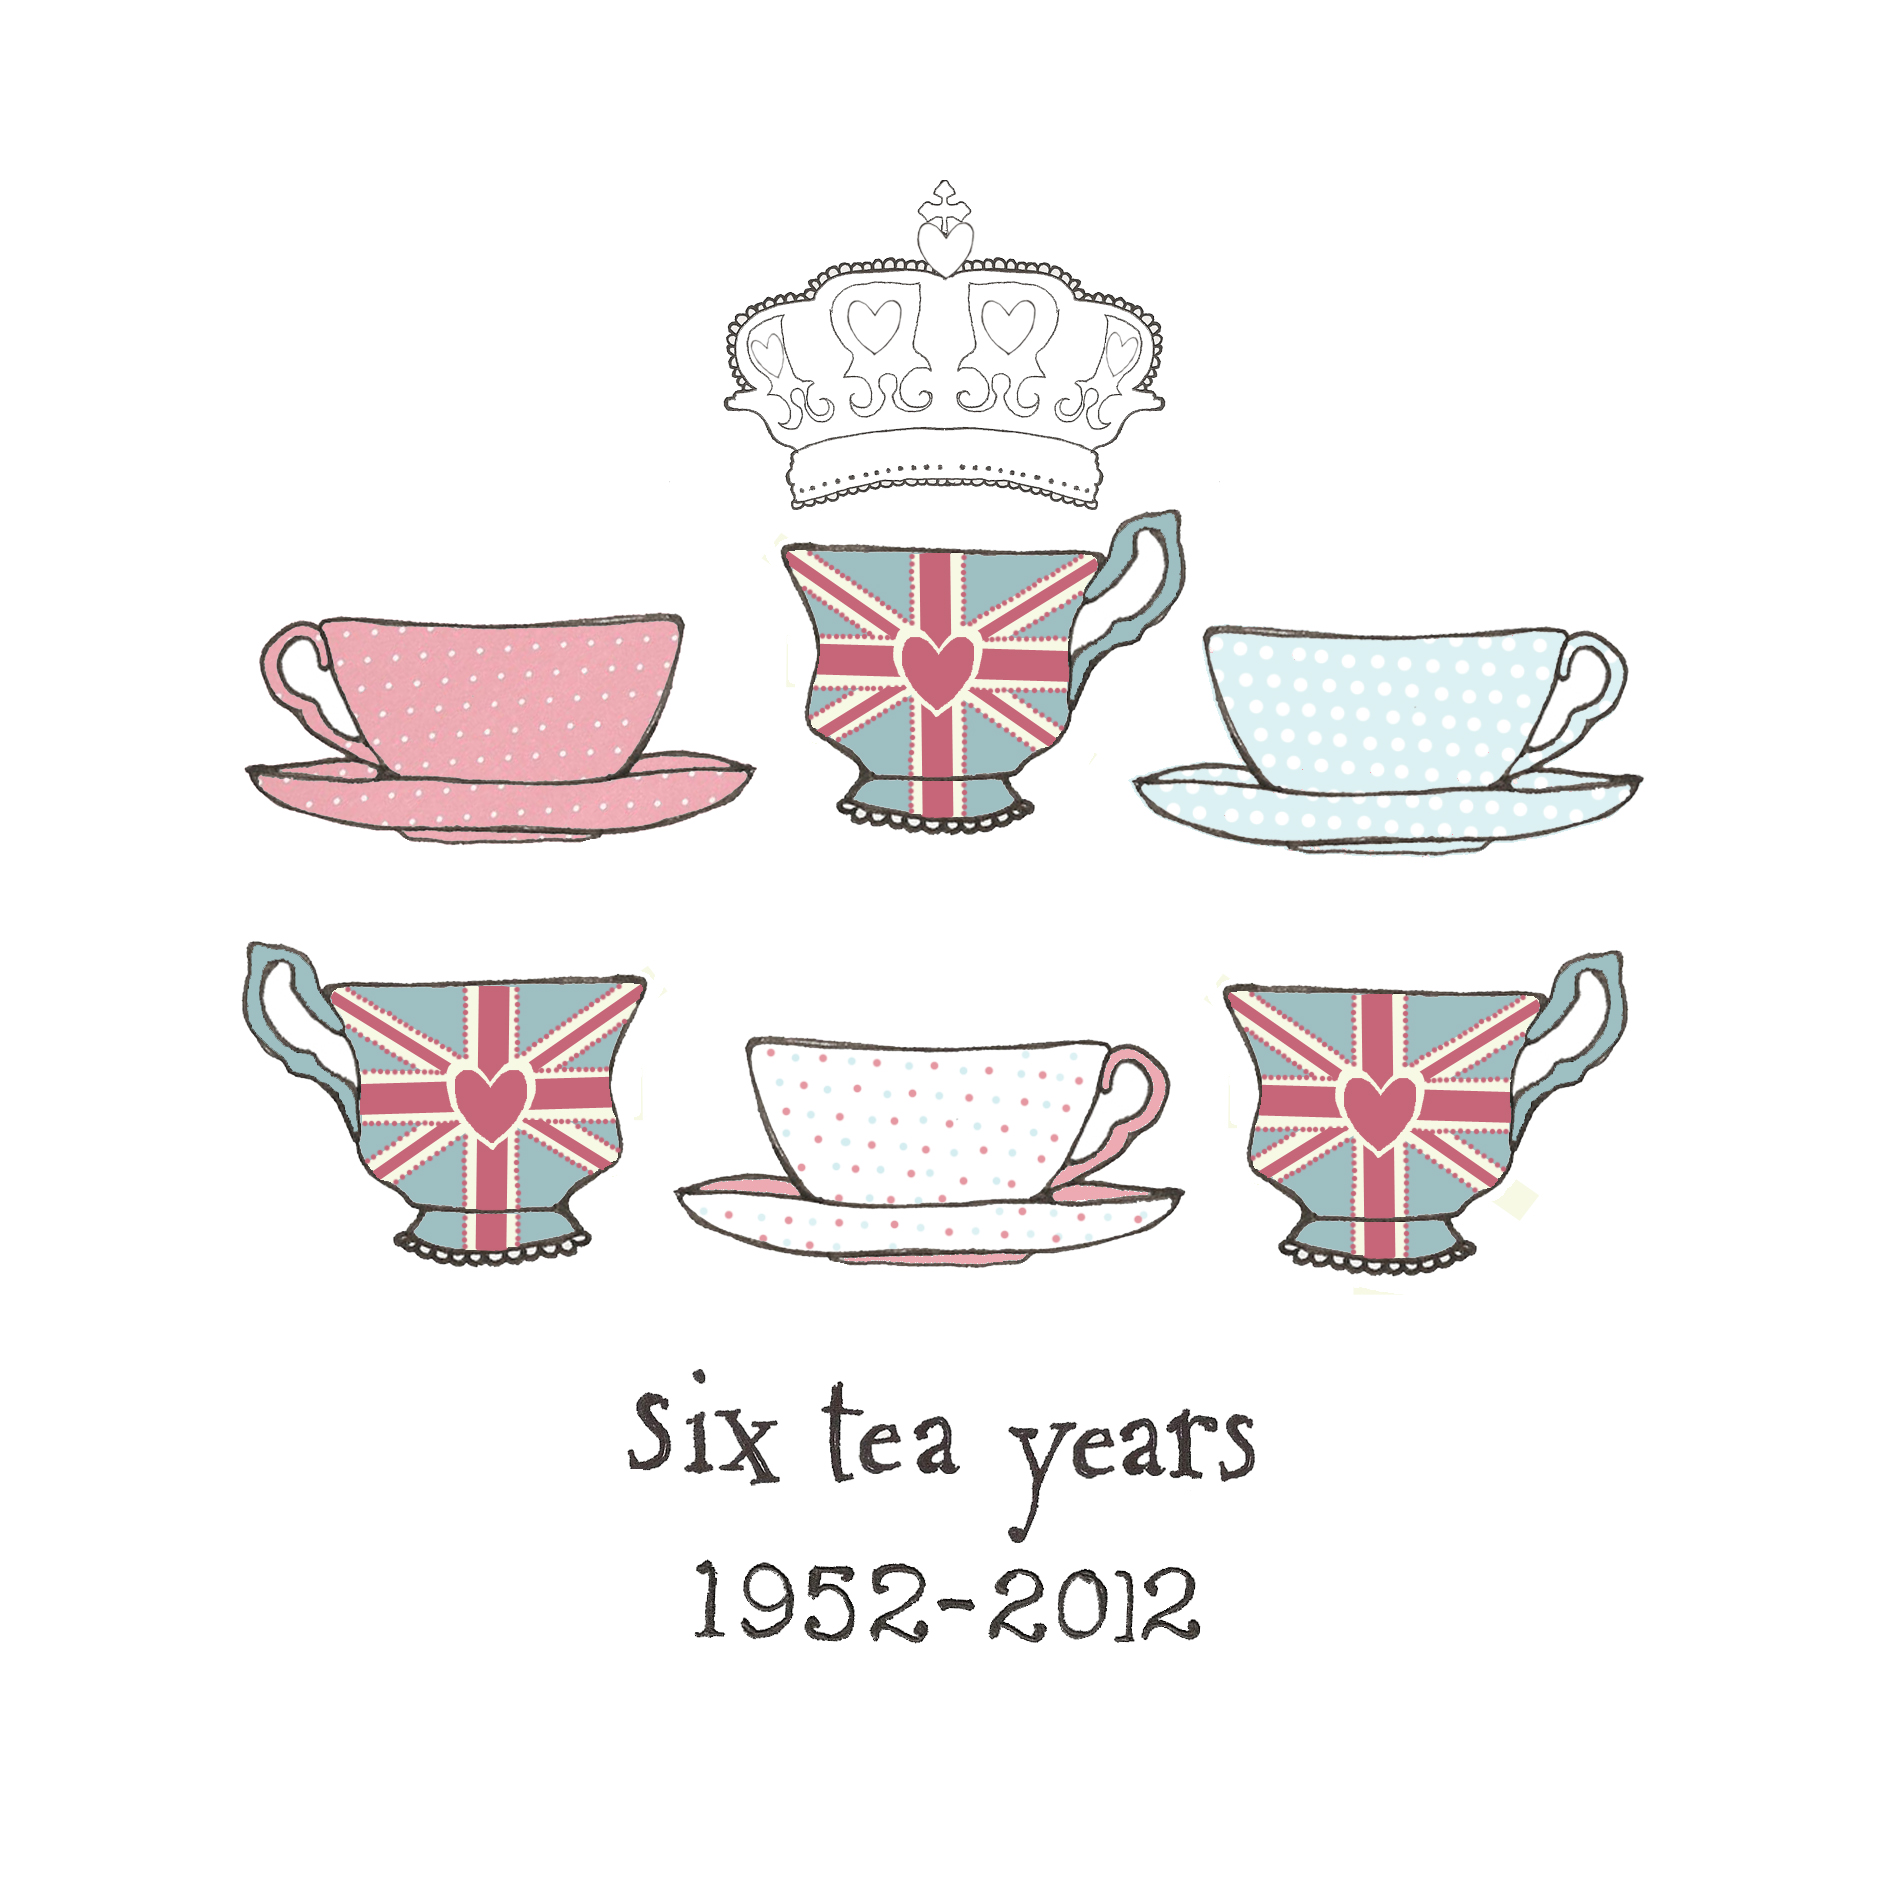 Bryony_Fripp_Illustrator_Queen Jubilee Card.jpg